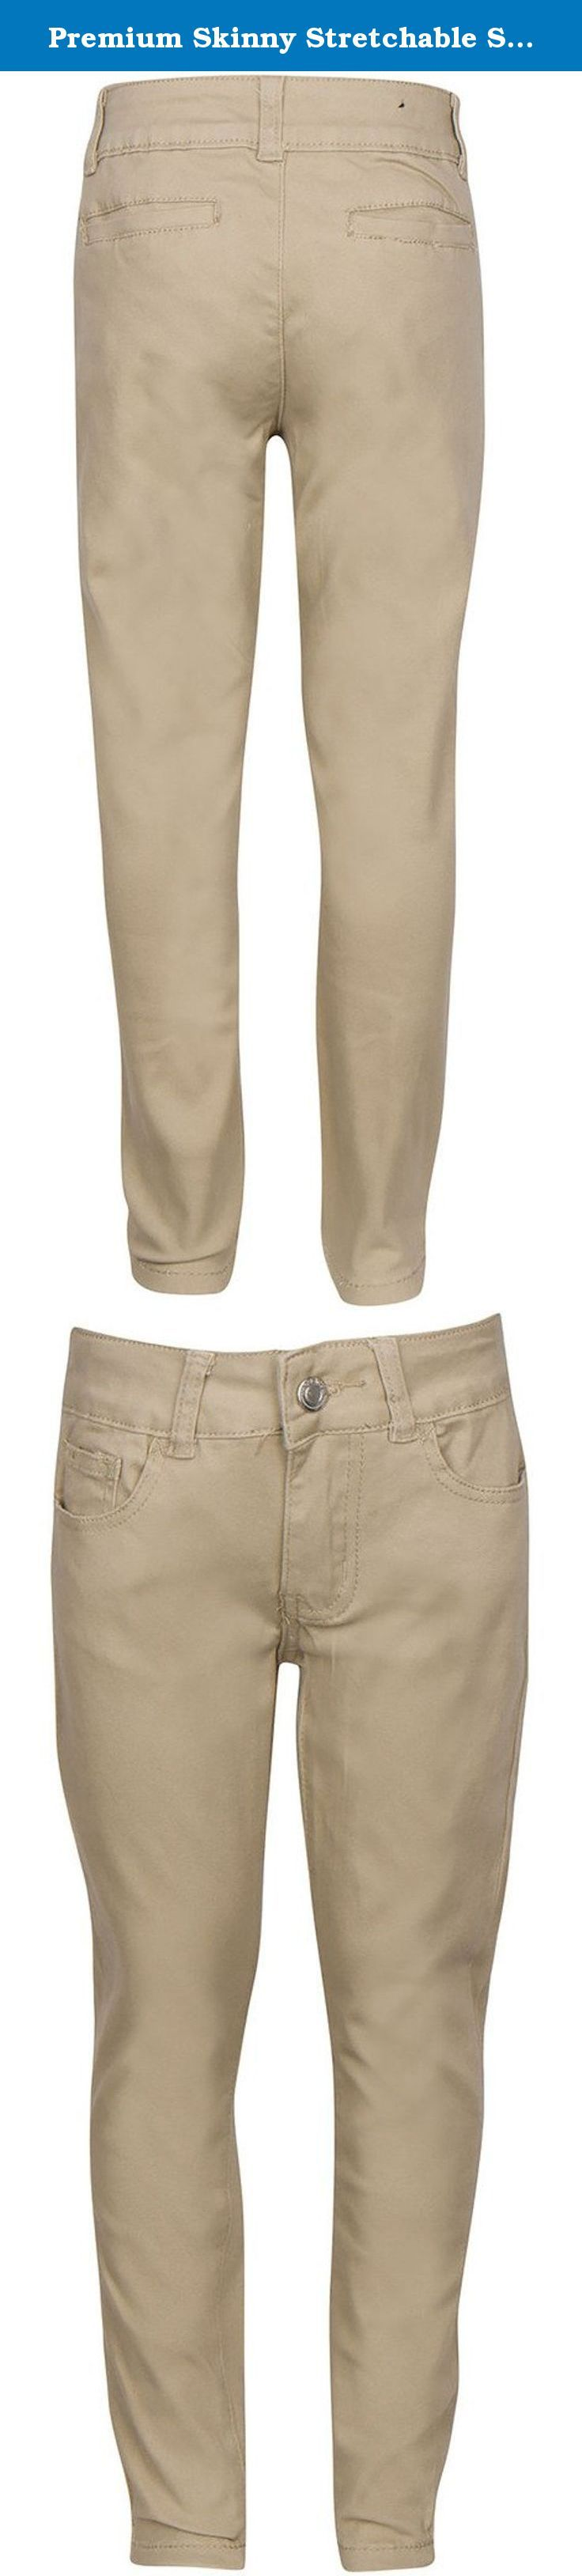 Premium Skinny Stretchable School Uniform Pants for Girls 14 Khaki. Have you been finding it difficult to get a skinny pant with stretchable material that looks stylish too? Or Are you looking for a skinny pant that can be comfortably worn for long durations without causing itching, excessive sweating or irritation? Well, we bring to you a skinny pant design that you will love for its many incredible features and benefits: - Stylish skinny fit with straight leg openings - looks trendy and...